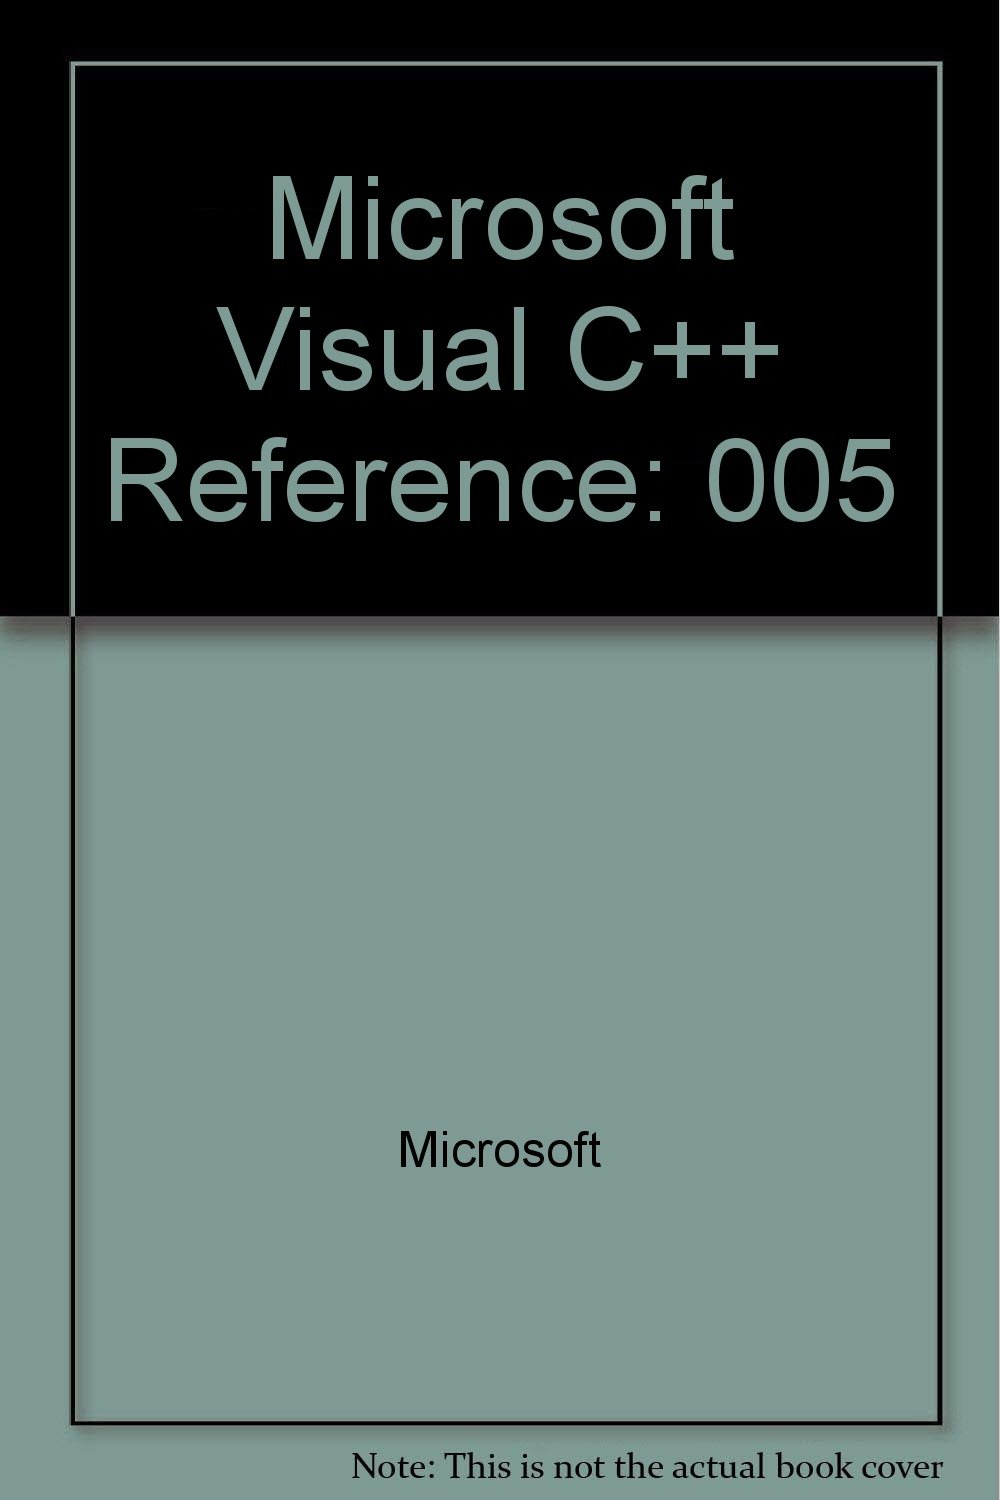 Microsoft Visual C++: Development System for Windows and Windows Nt Version 2.0